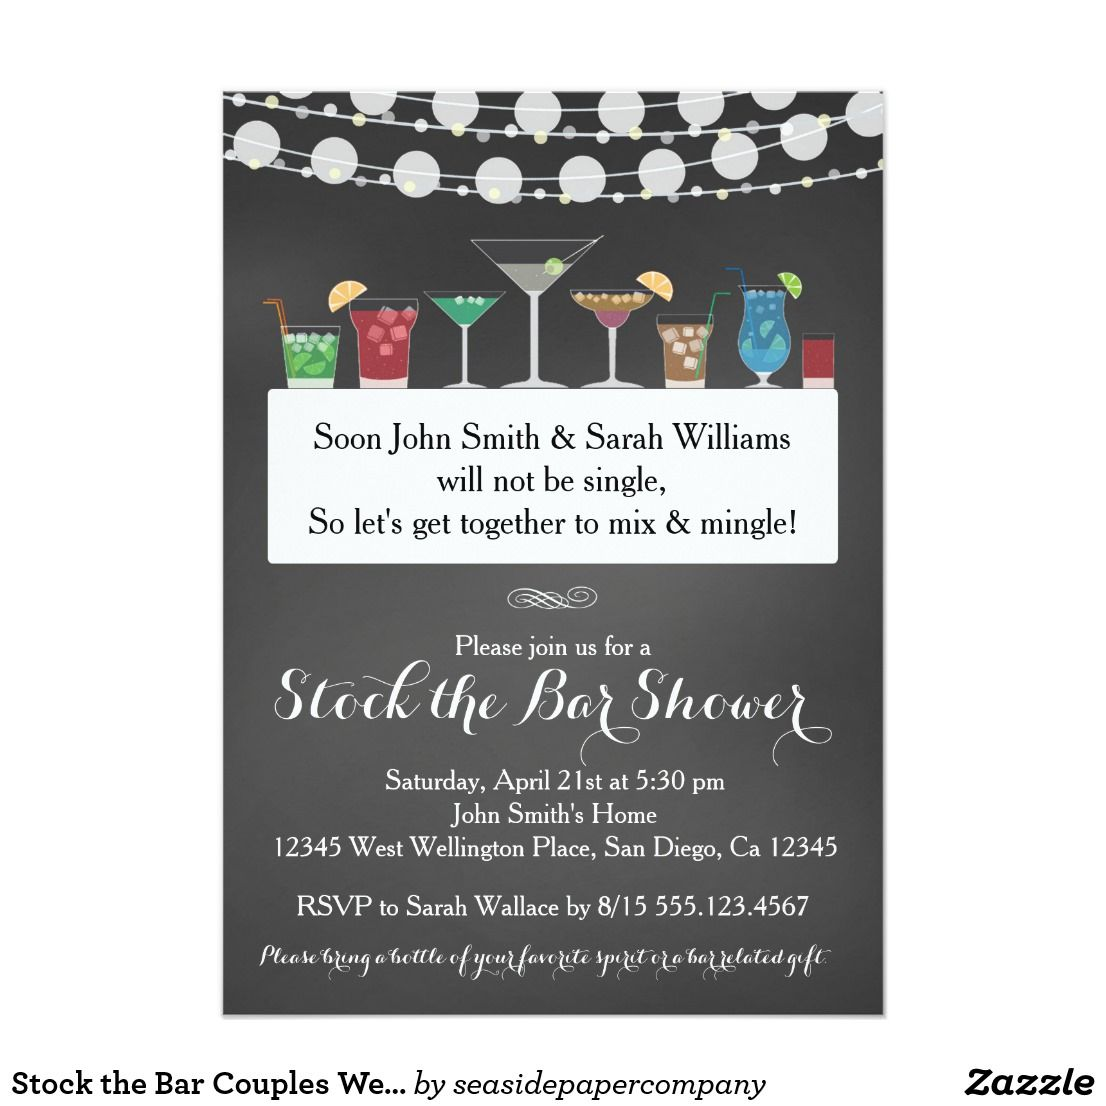 Stock the Bar Couples Wedding Shower Invitation | Couples wedding ...